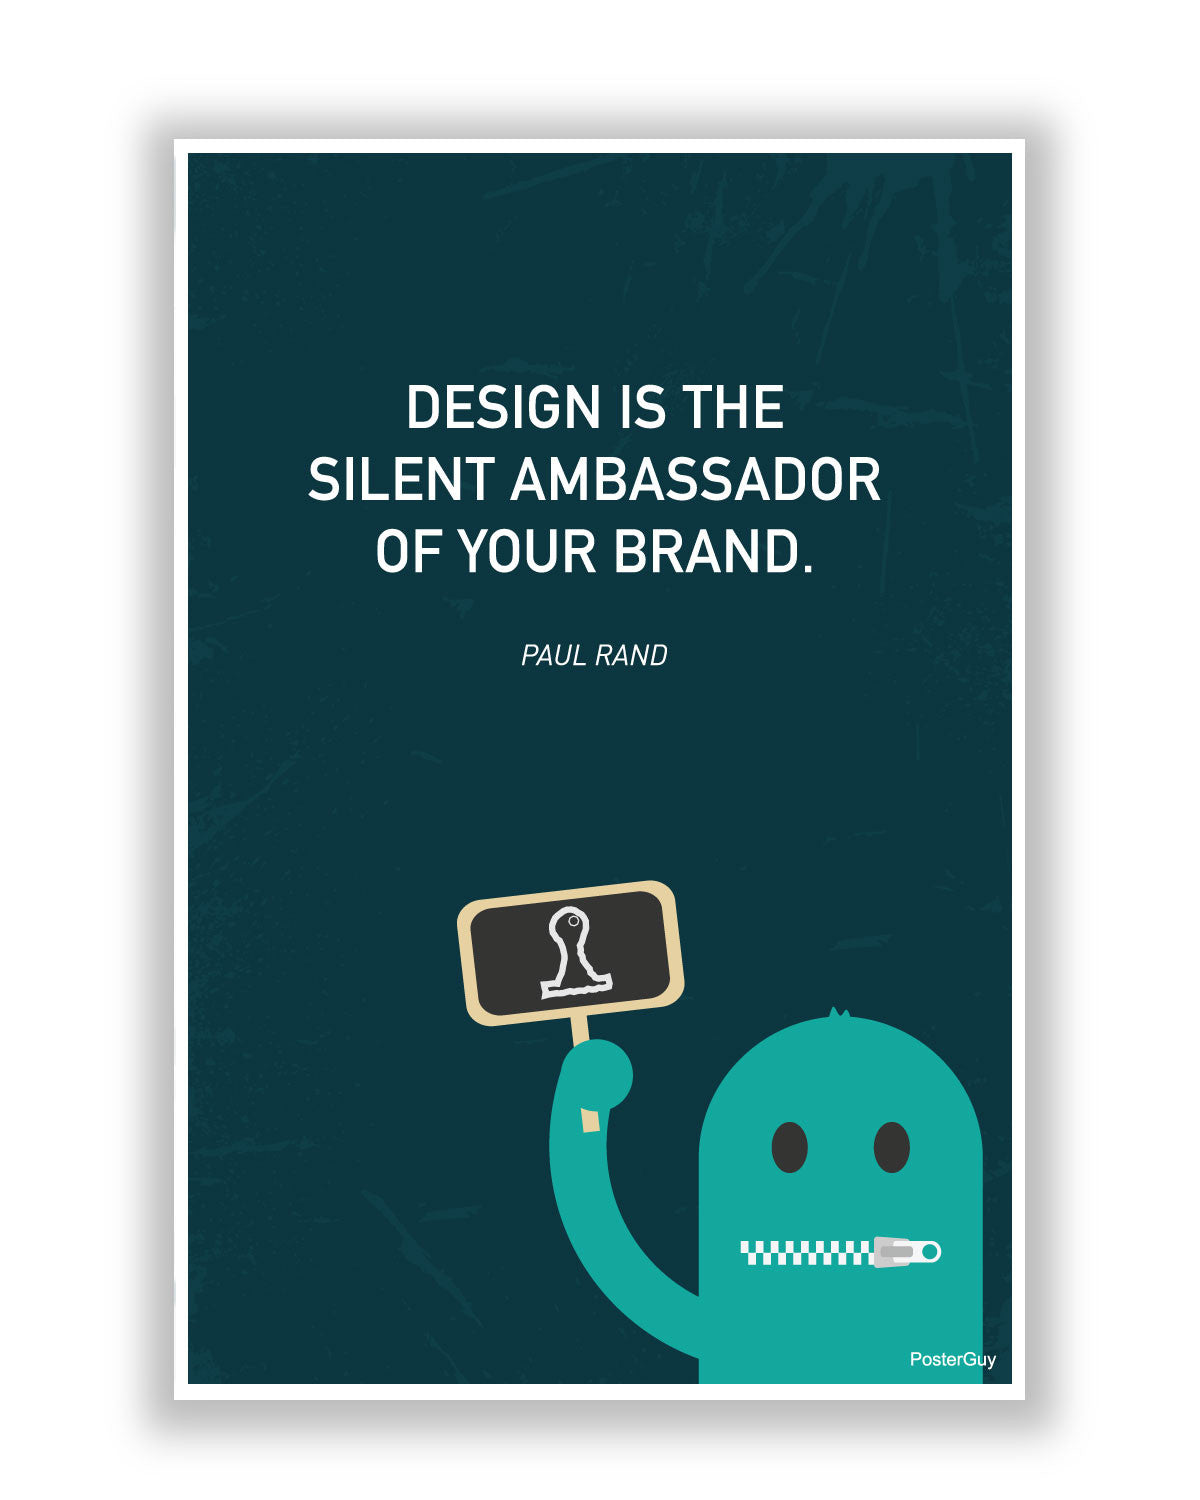 Design and Brand - A silent Ambassador Motivational Poster